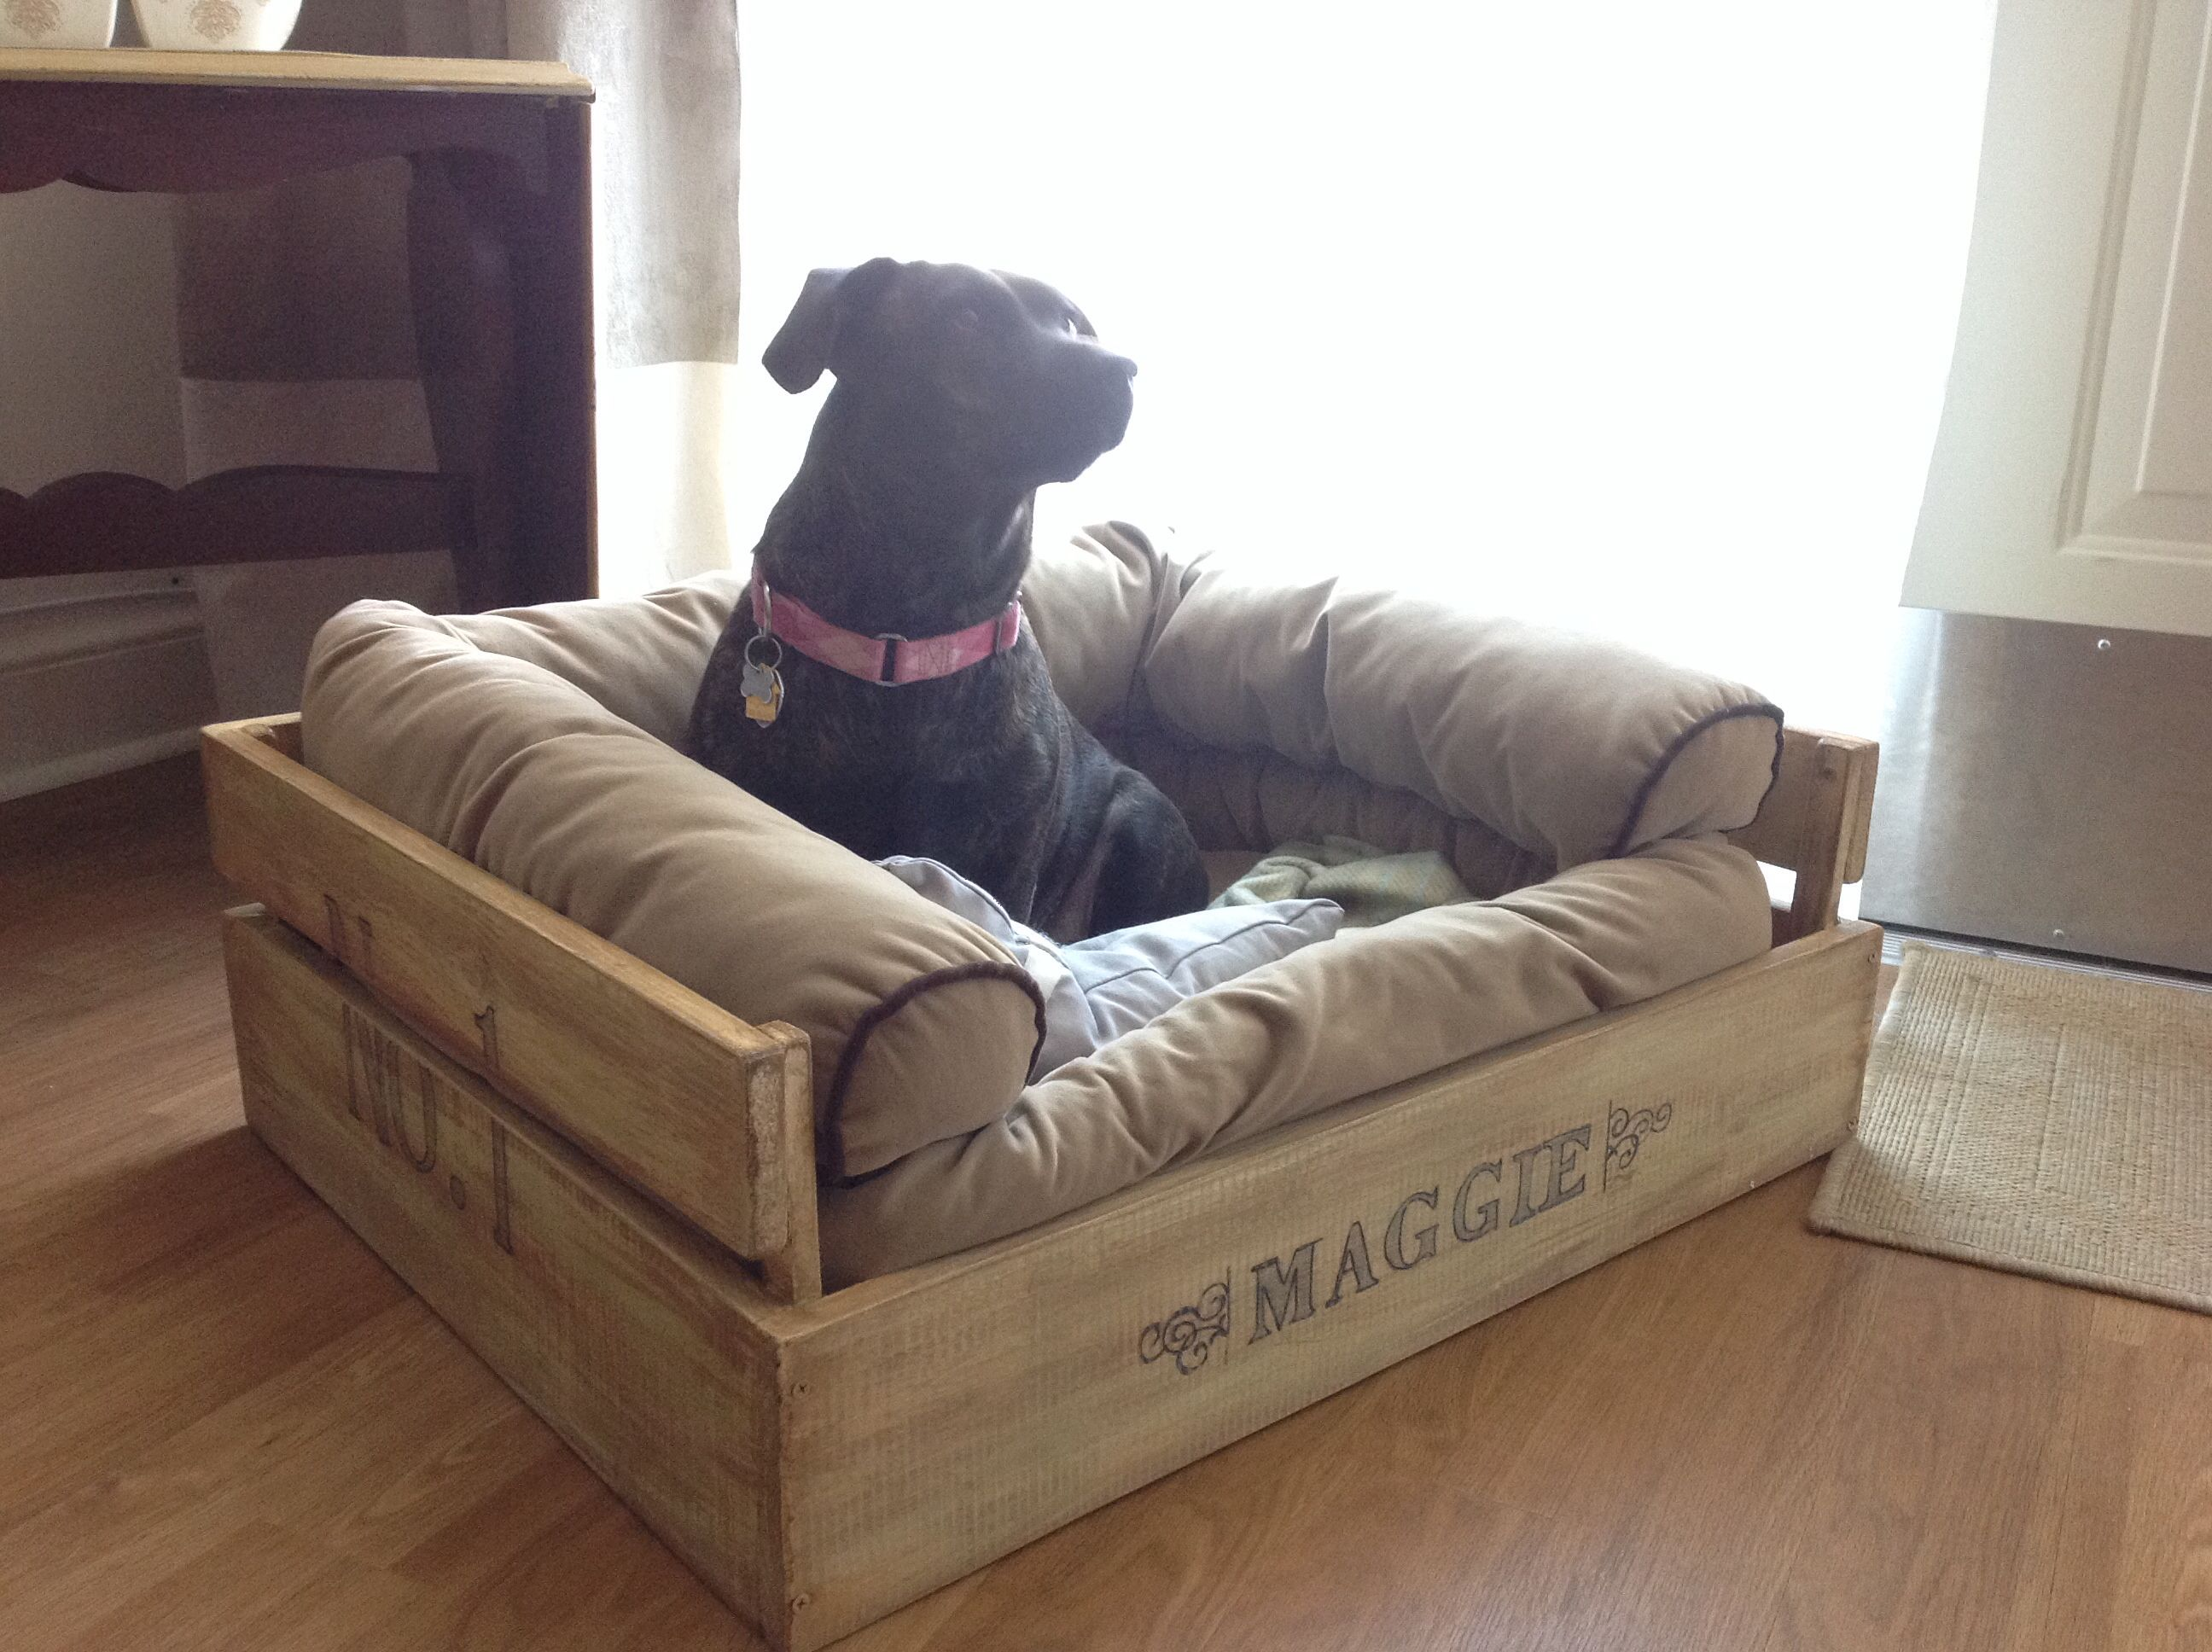 Diy Hundebett Diy Comfy Crate Dog Bed Just Write The Name On With A